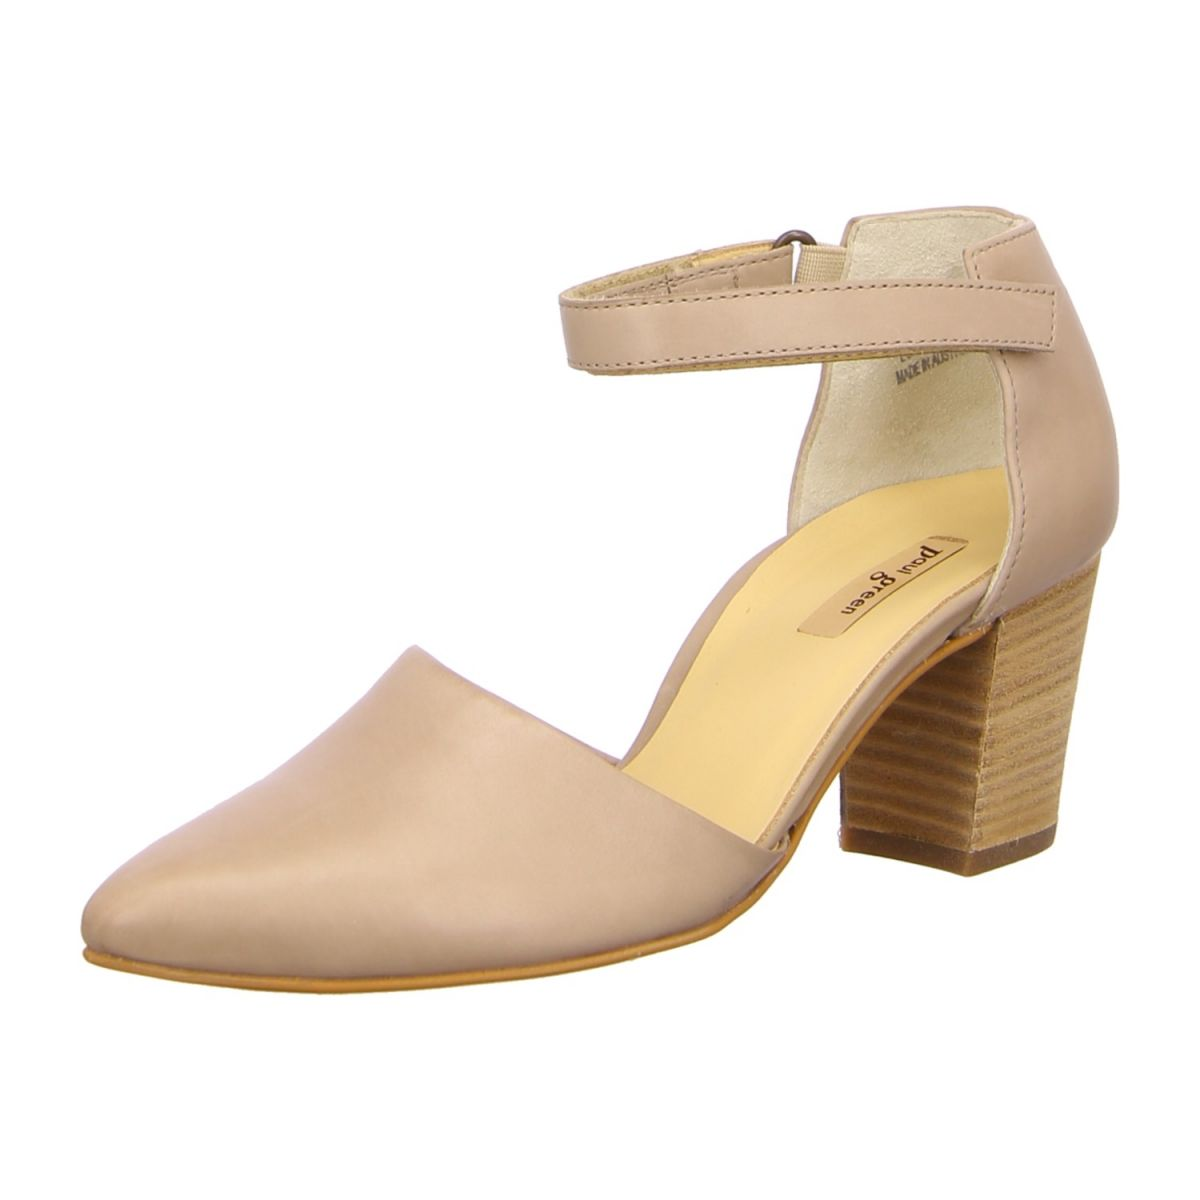 NEU: Paul Green Pumps 3394-007 - taupe - | Schuhe ...